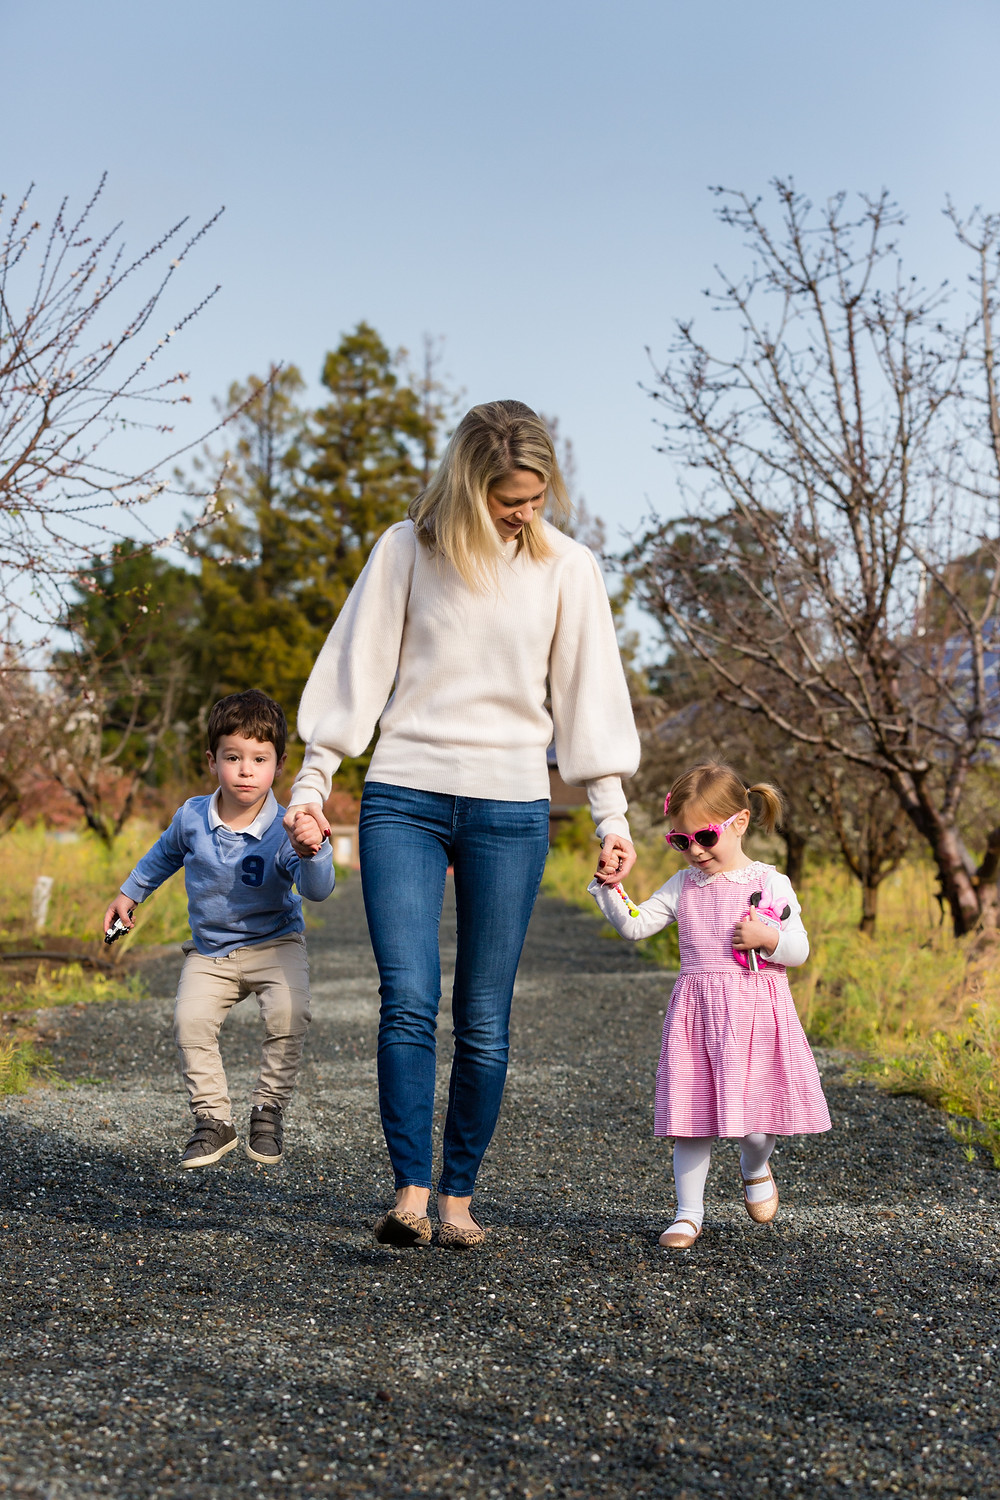 blonde mother walking with young son and daughter in San Jose, CA